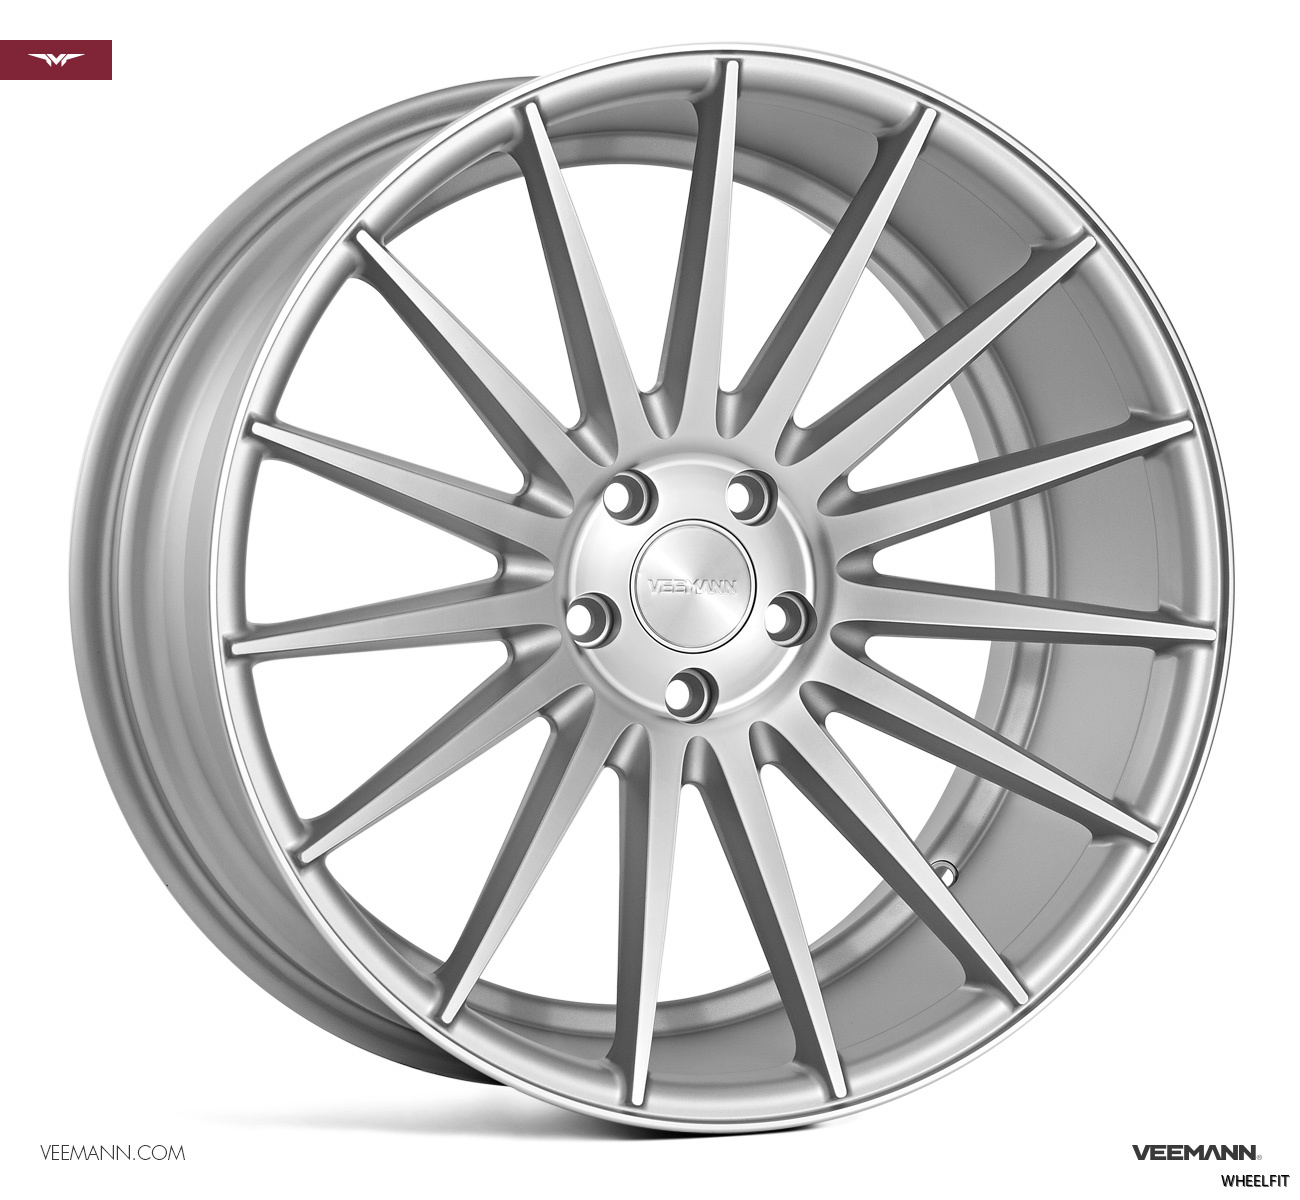 VEEMANN VC7 FULL MATT SILVER MACHINED